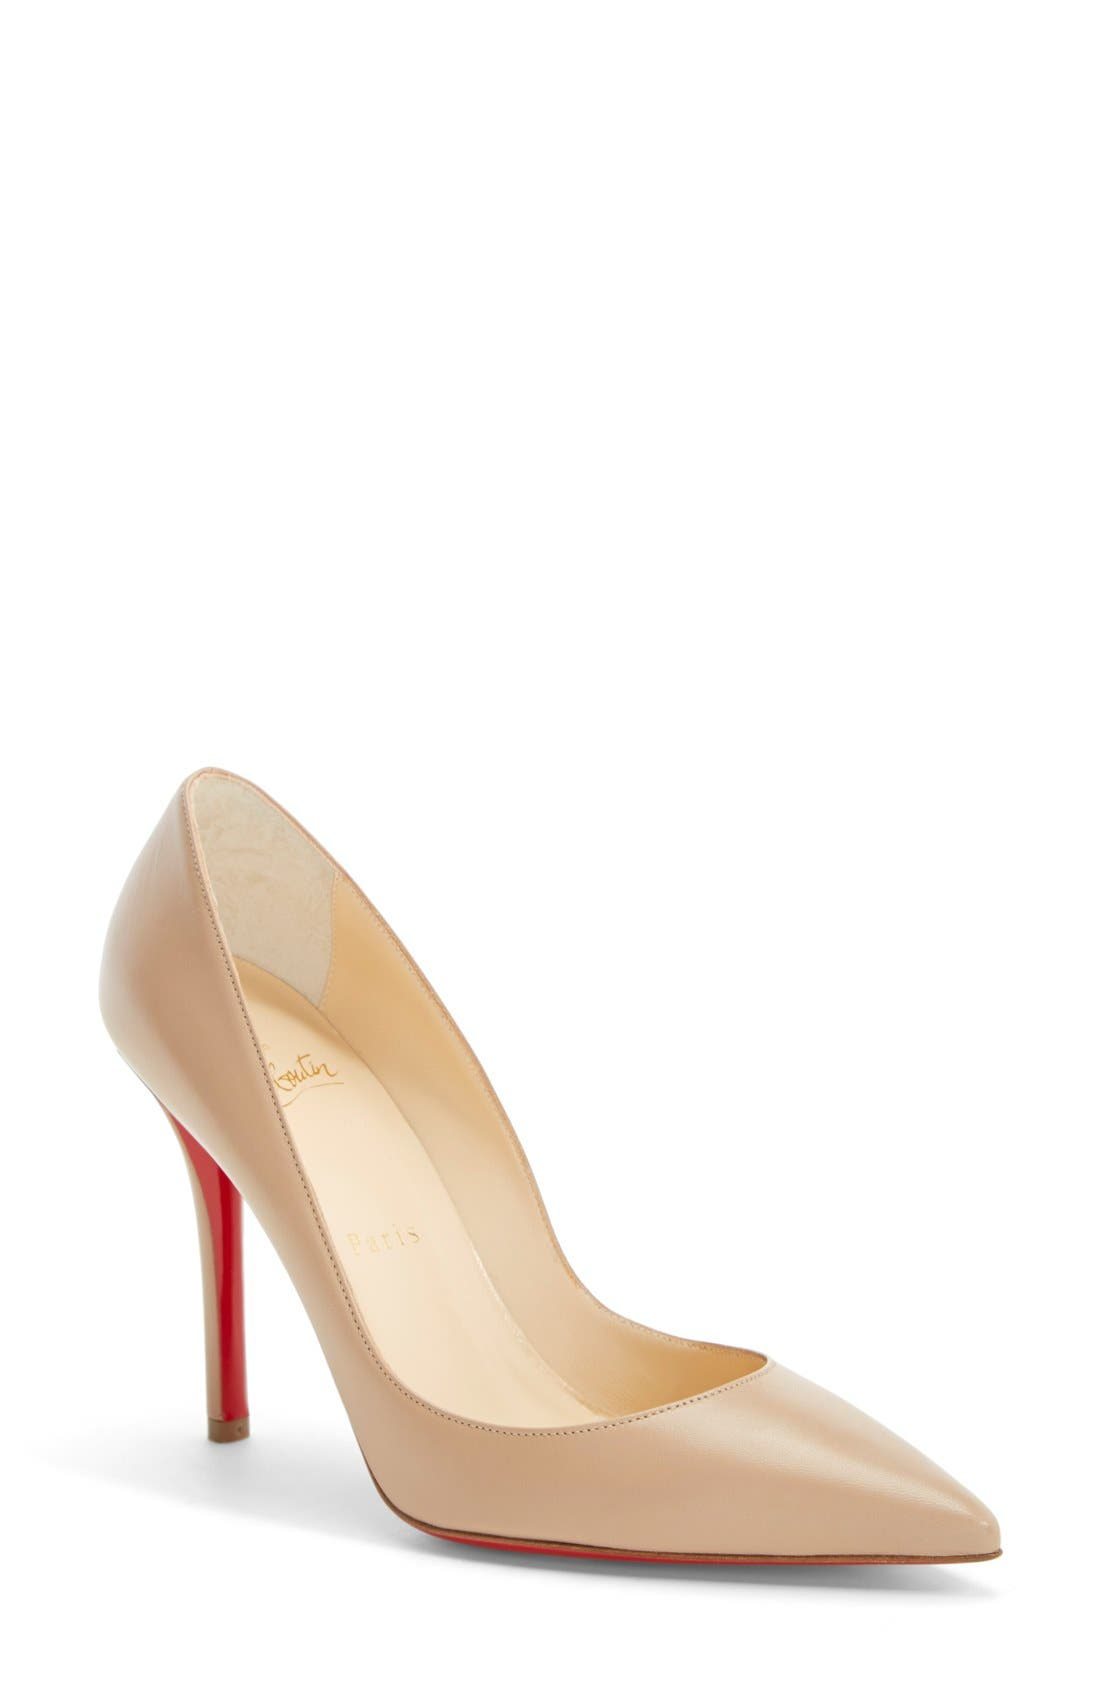 'Apostrophy' Pointy Toe Pump,                             Main thumbnail 1, color,